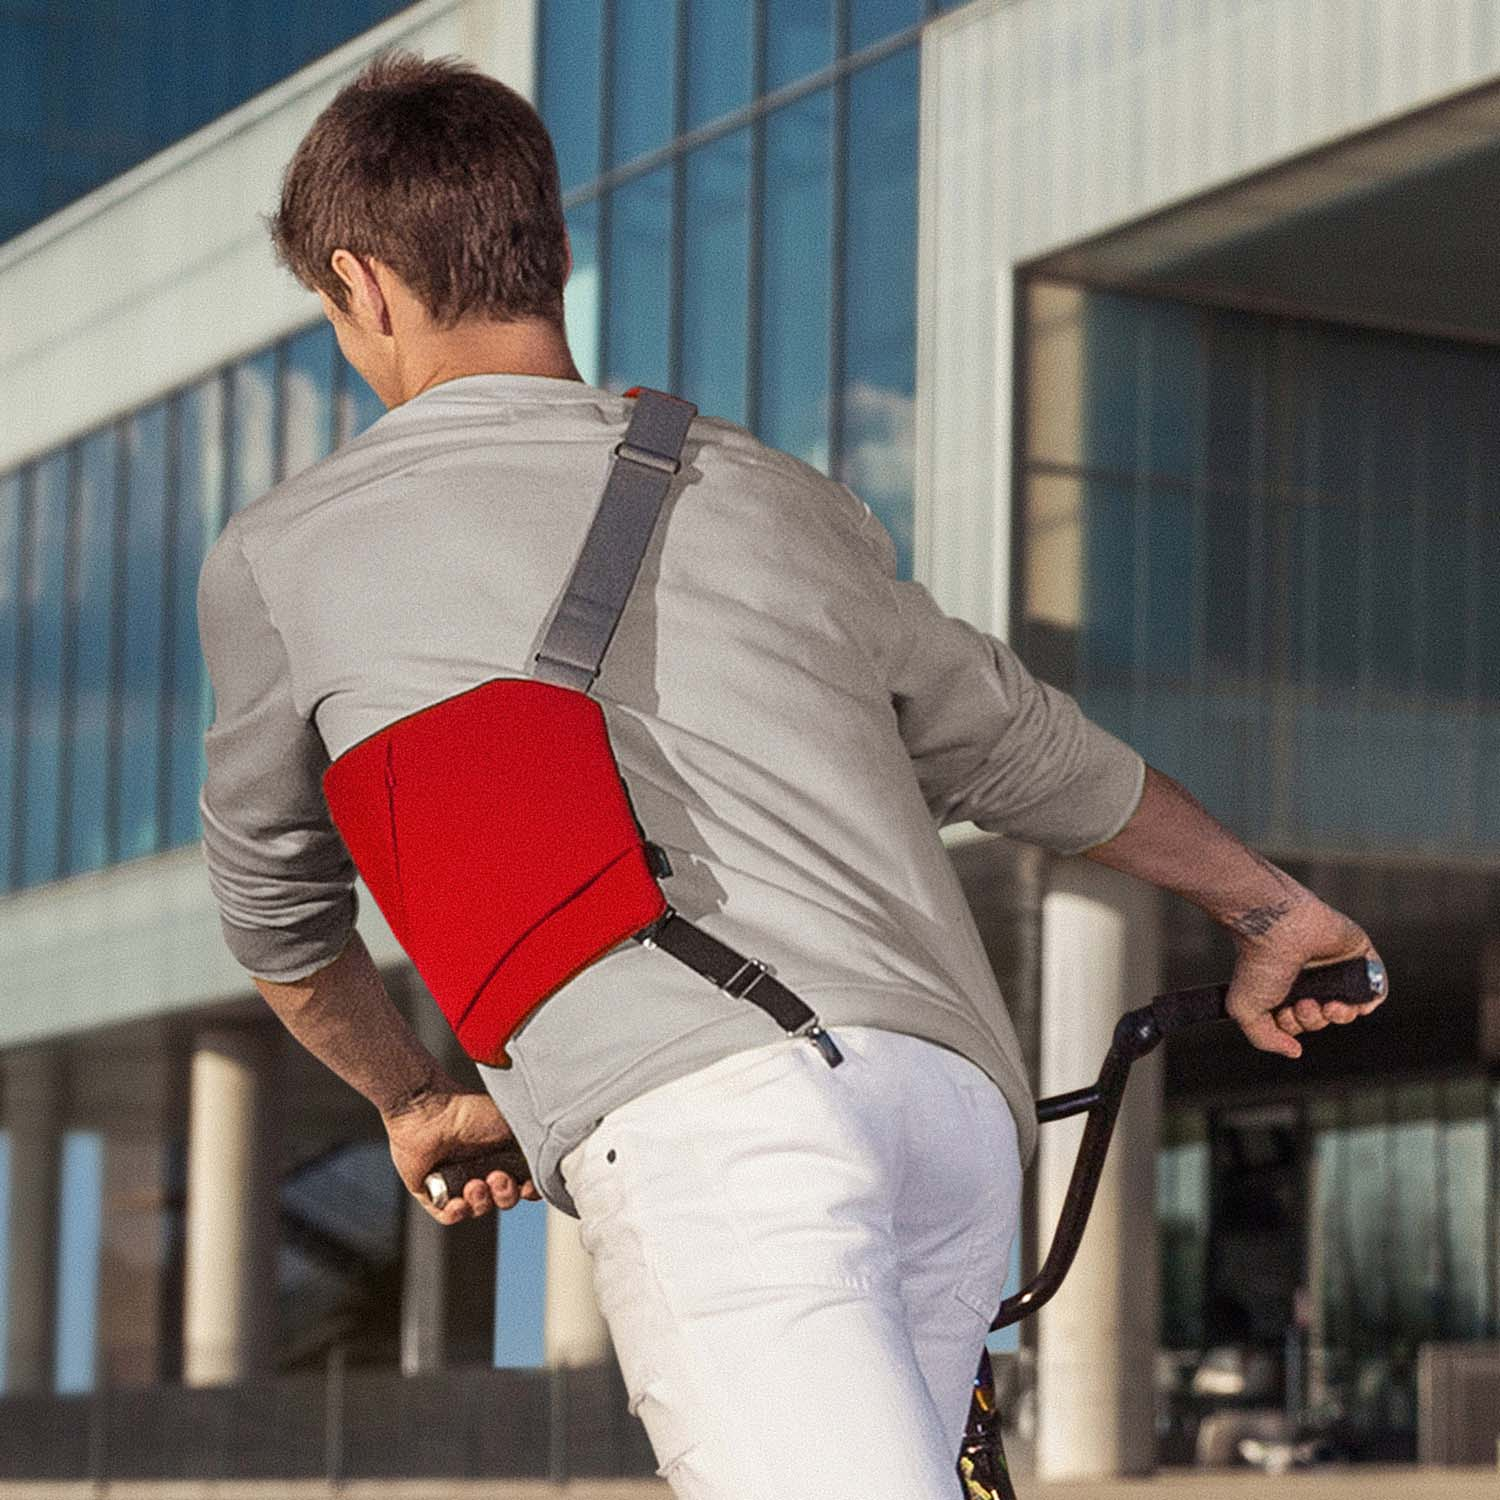 Man on bike doing stunts with a red textile shoulder crossbody bag by Baggizmo